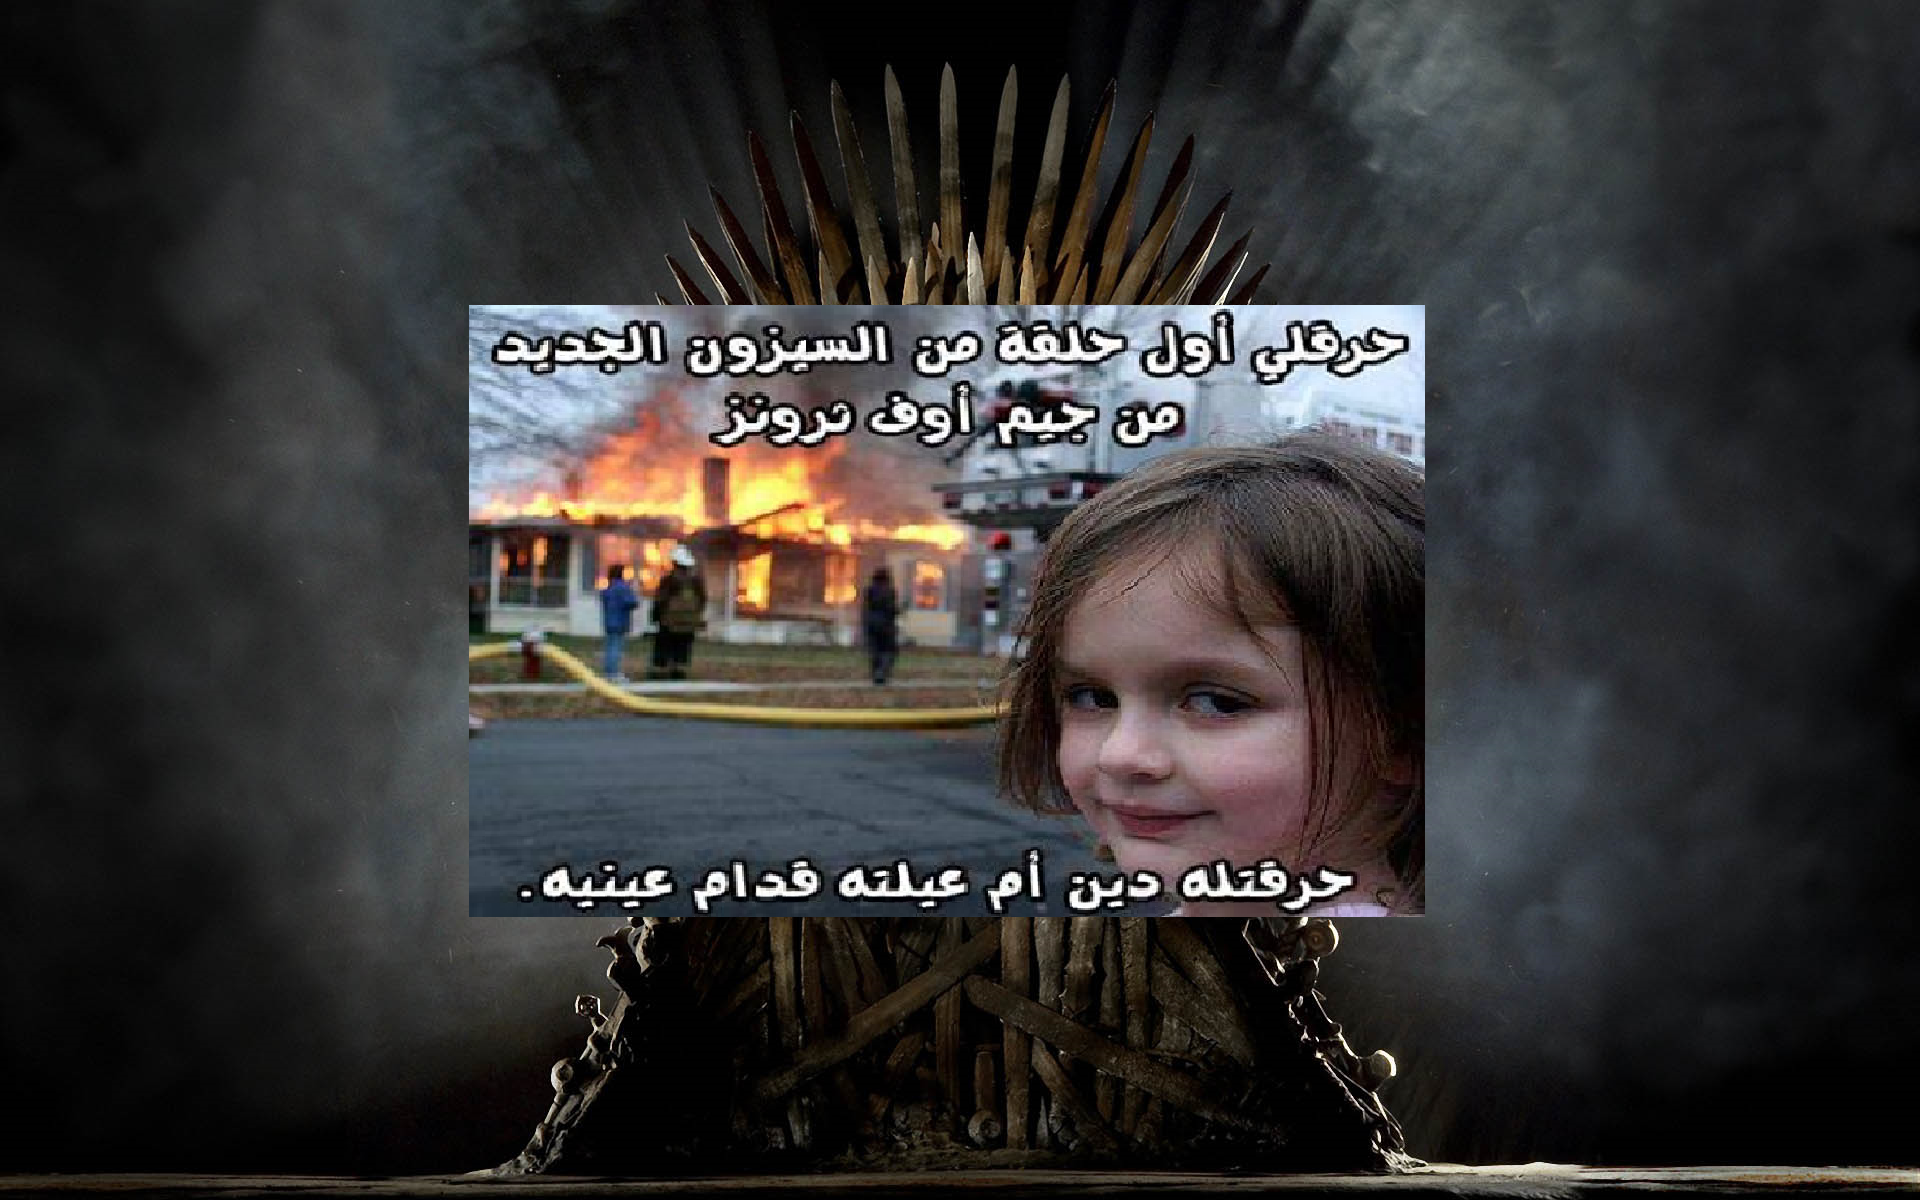 17 times game of thrones  official arabic page memes were